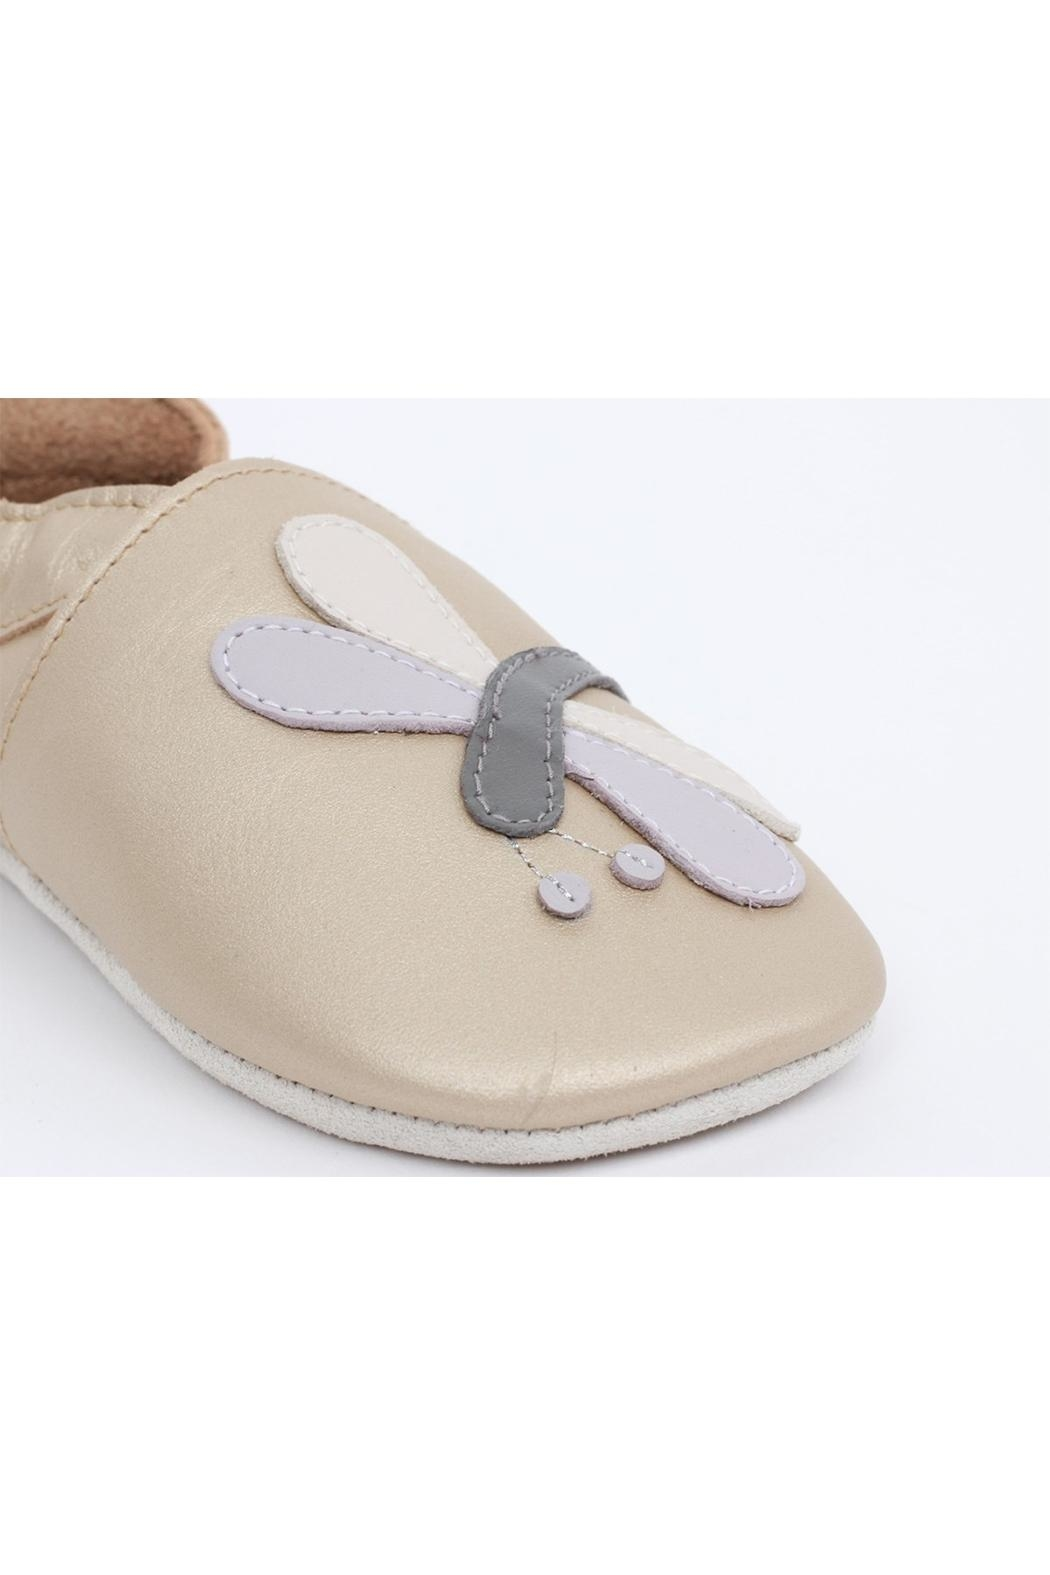 Bobux Gold-Dragonfly Soft-Sole Slippers - Front Full Image